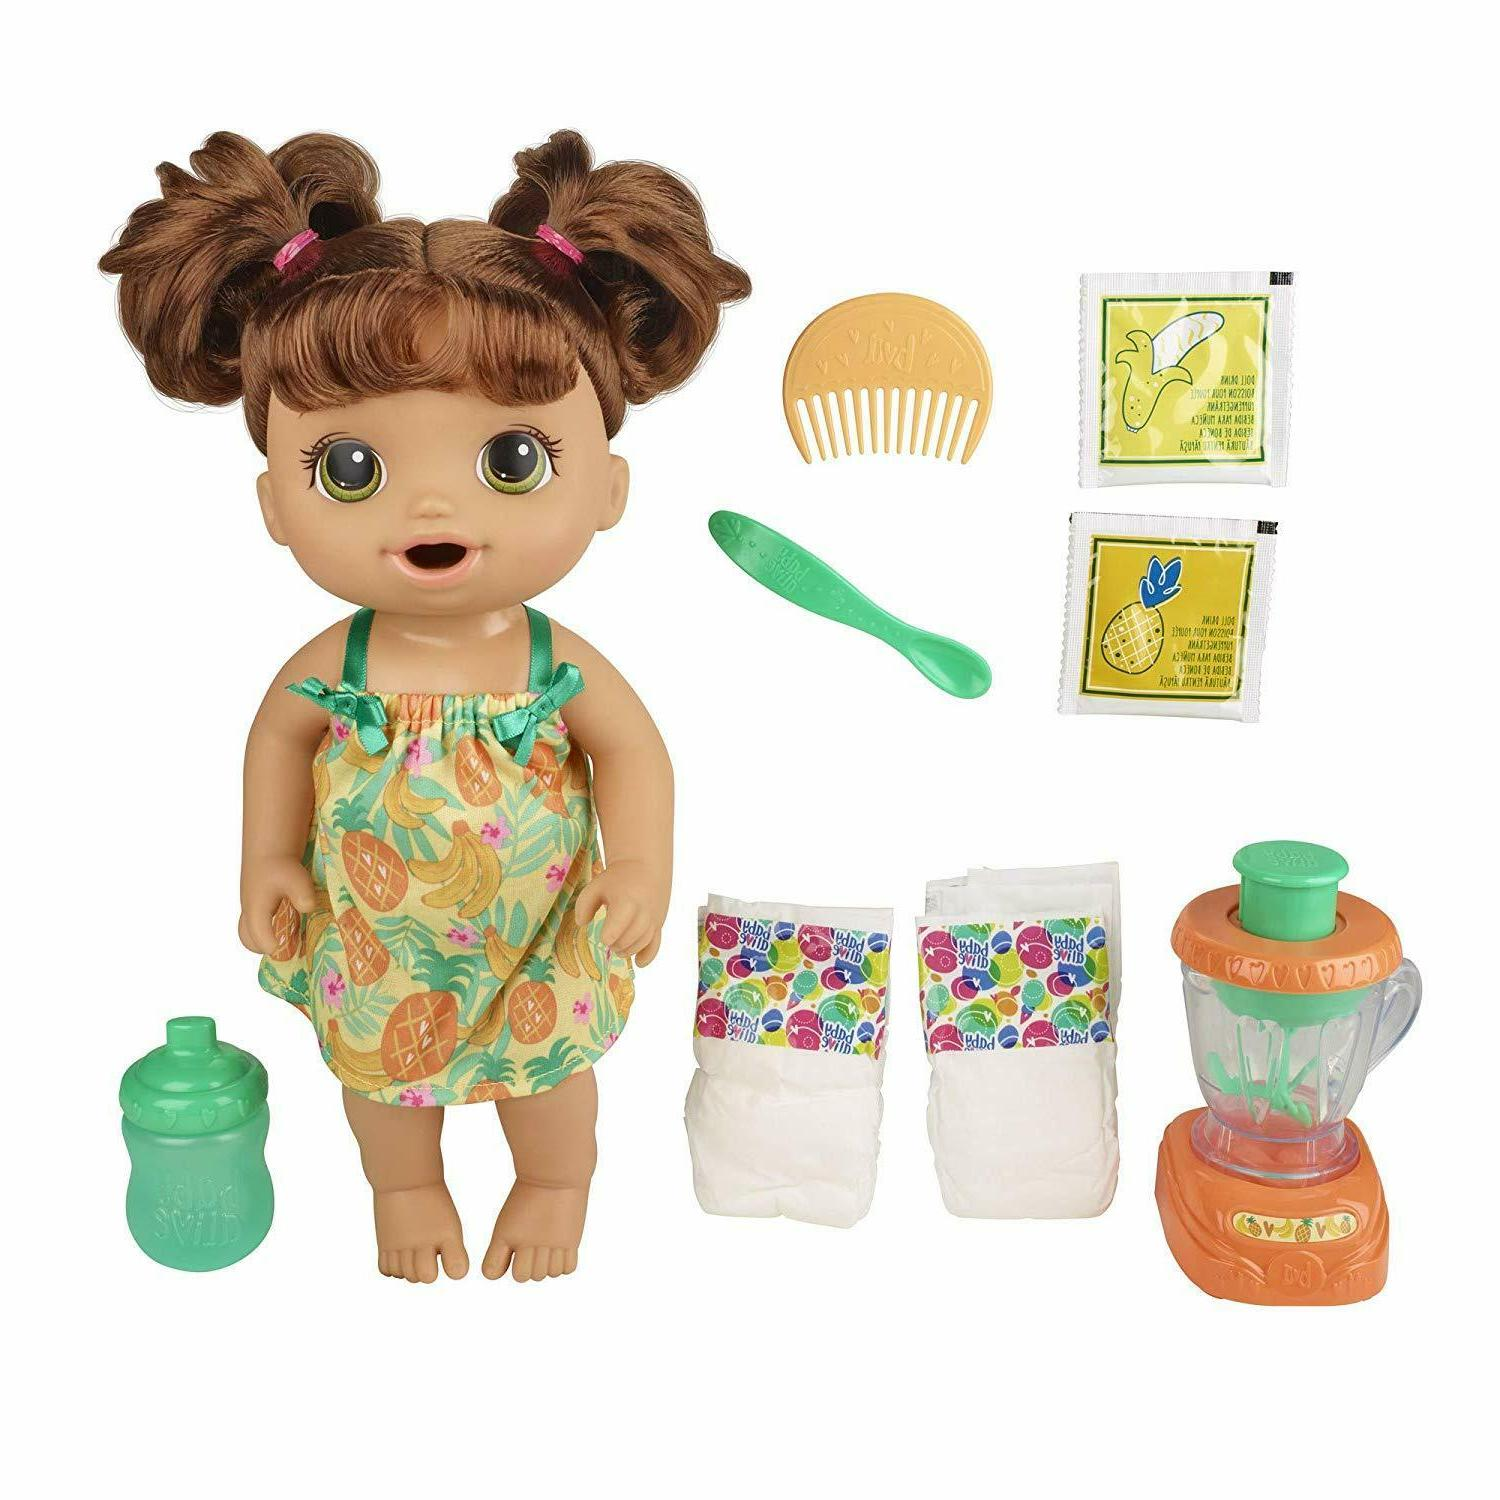 Baby Alive Baby Doll with Accessories